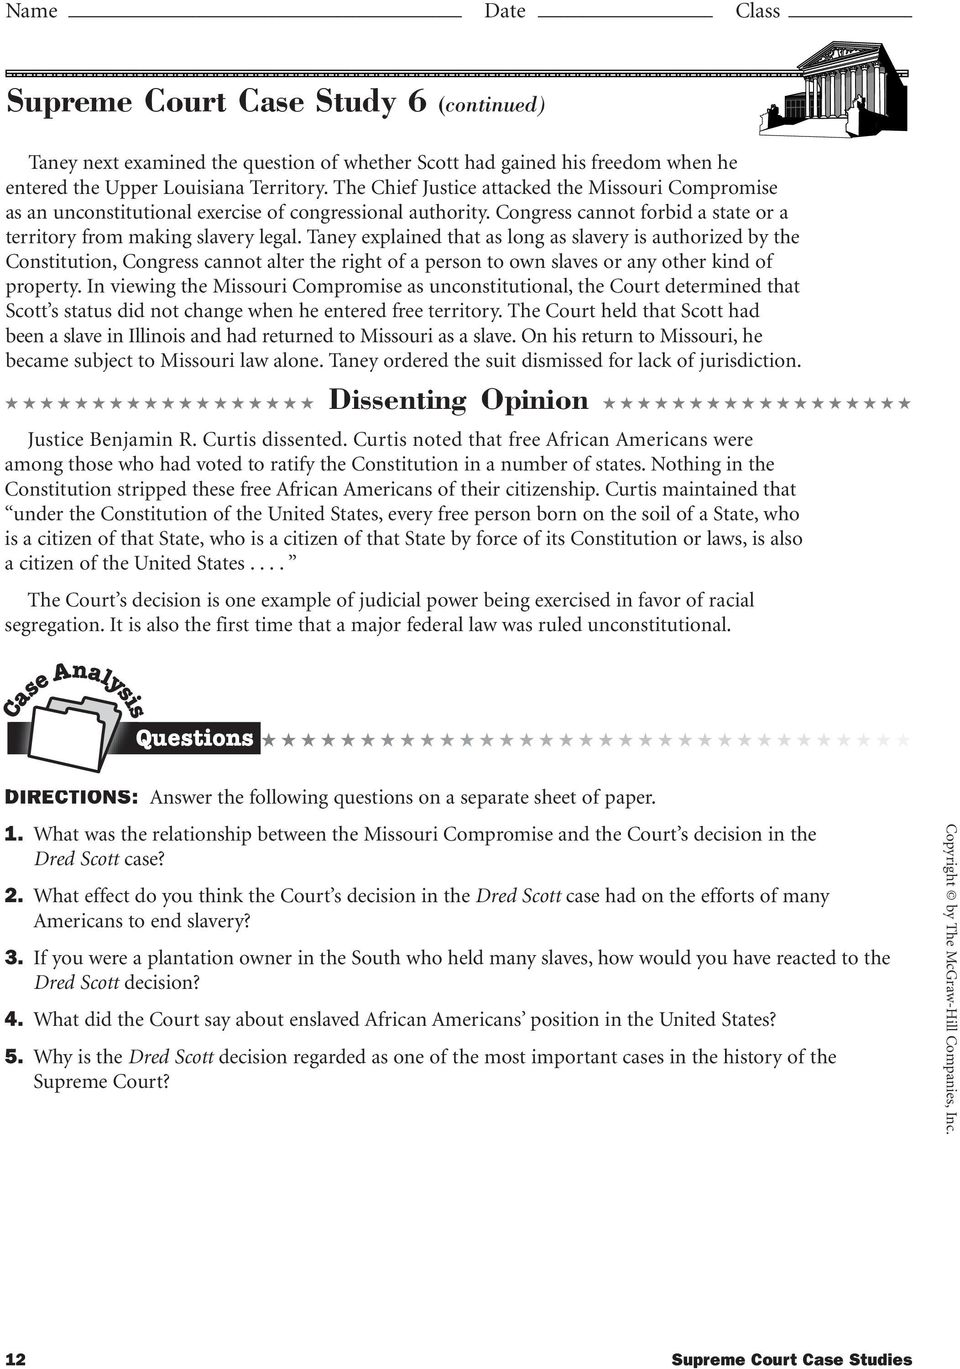 Supreme Court Cases Essay Page  Supreme Court Cases Essay